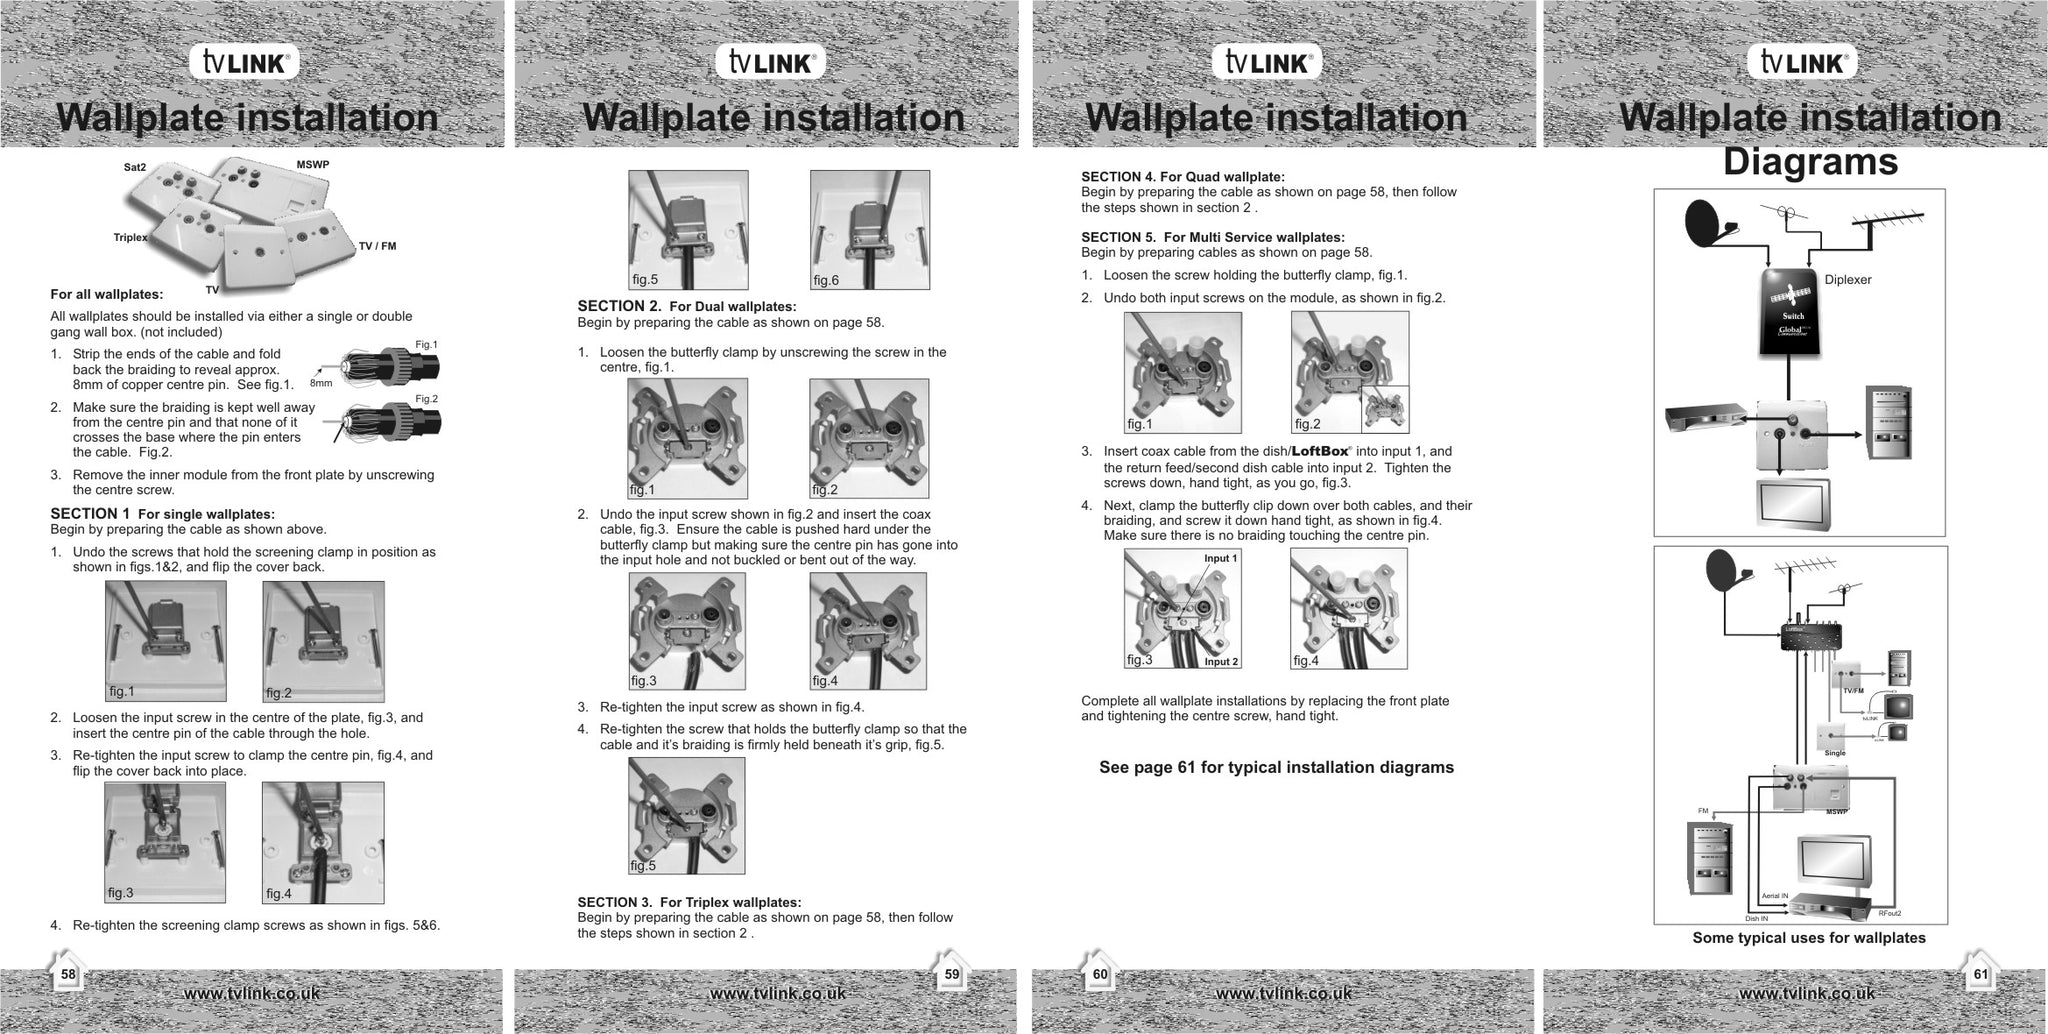 Wallplates diagram